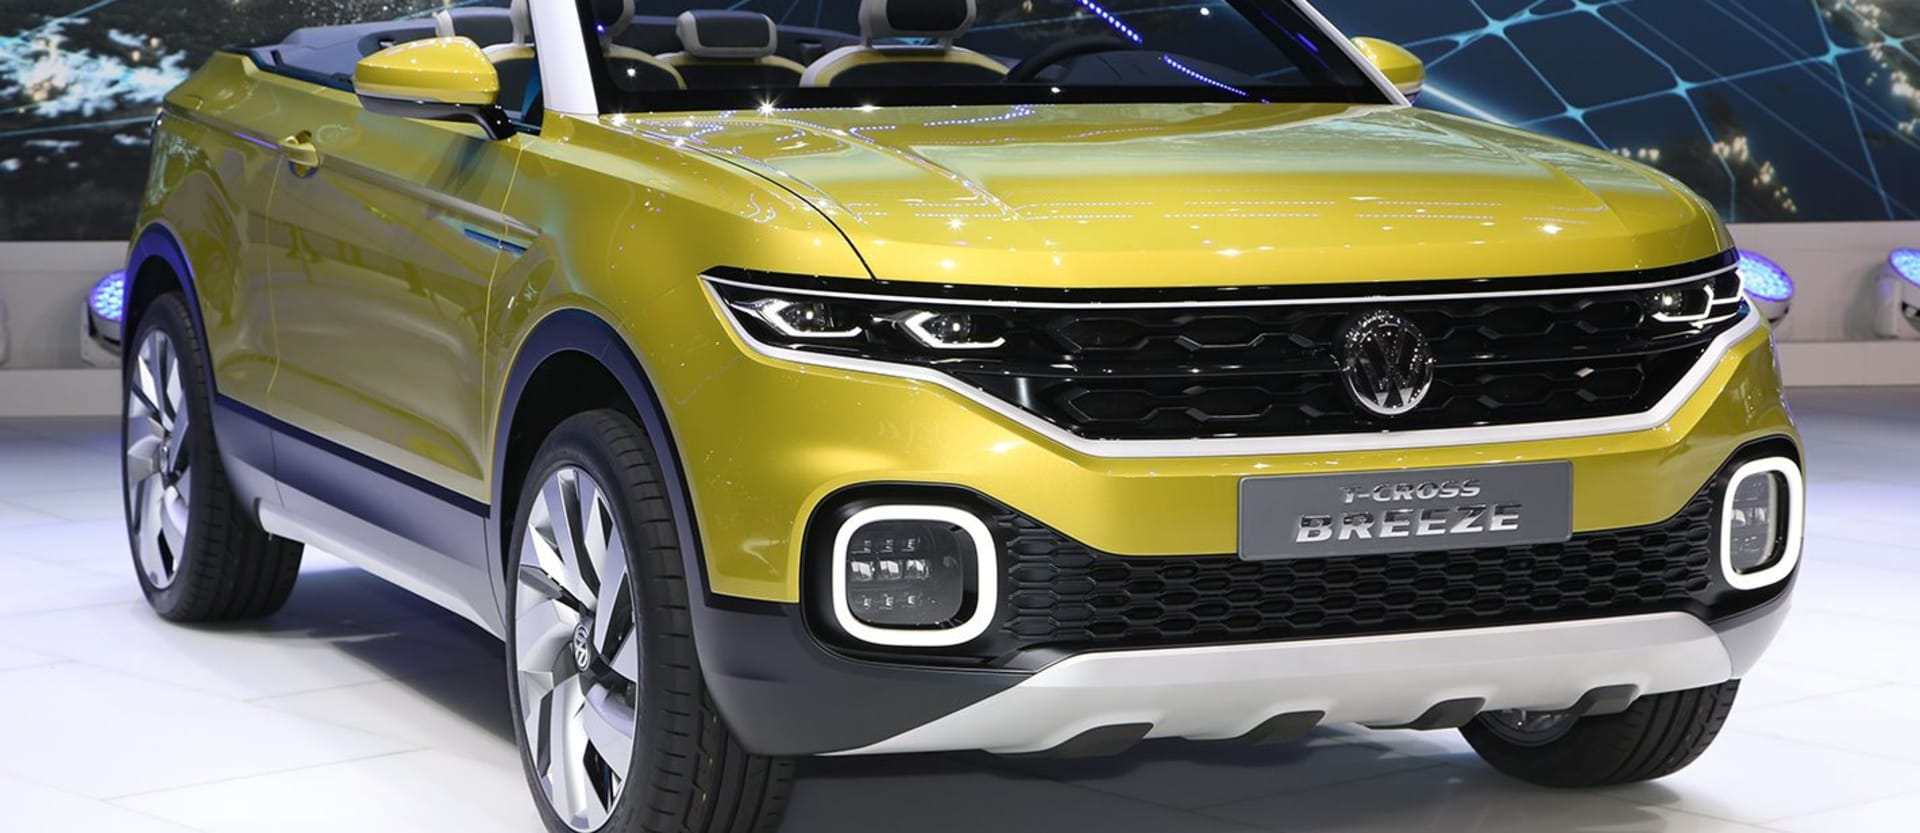 2016 Geneva Motor Show: Volkswagen T-Cross Breeze revealed